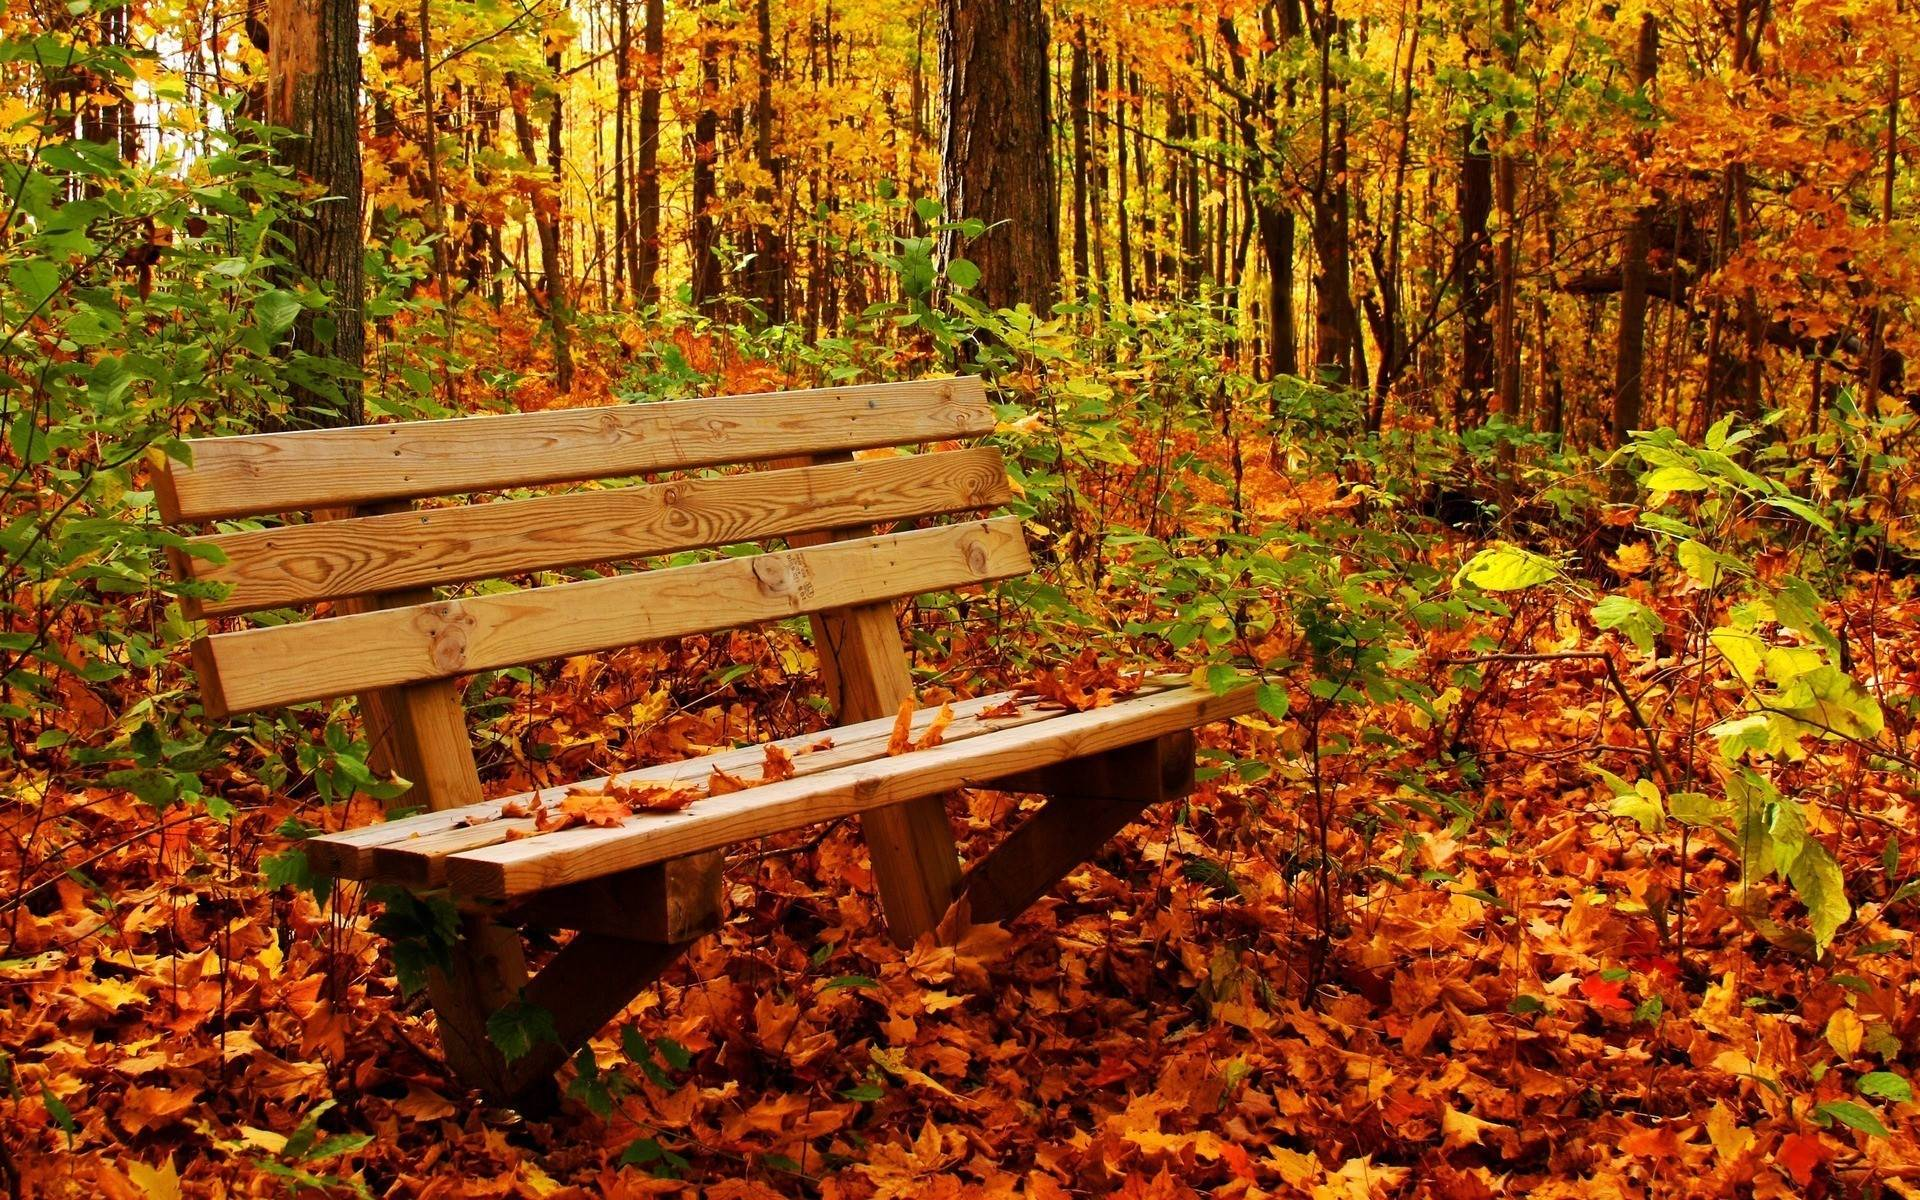 desktop wallpaper nature autumn hd pictures 4 hd wallpapers eakai